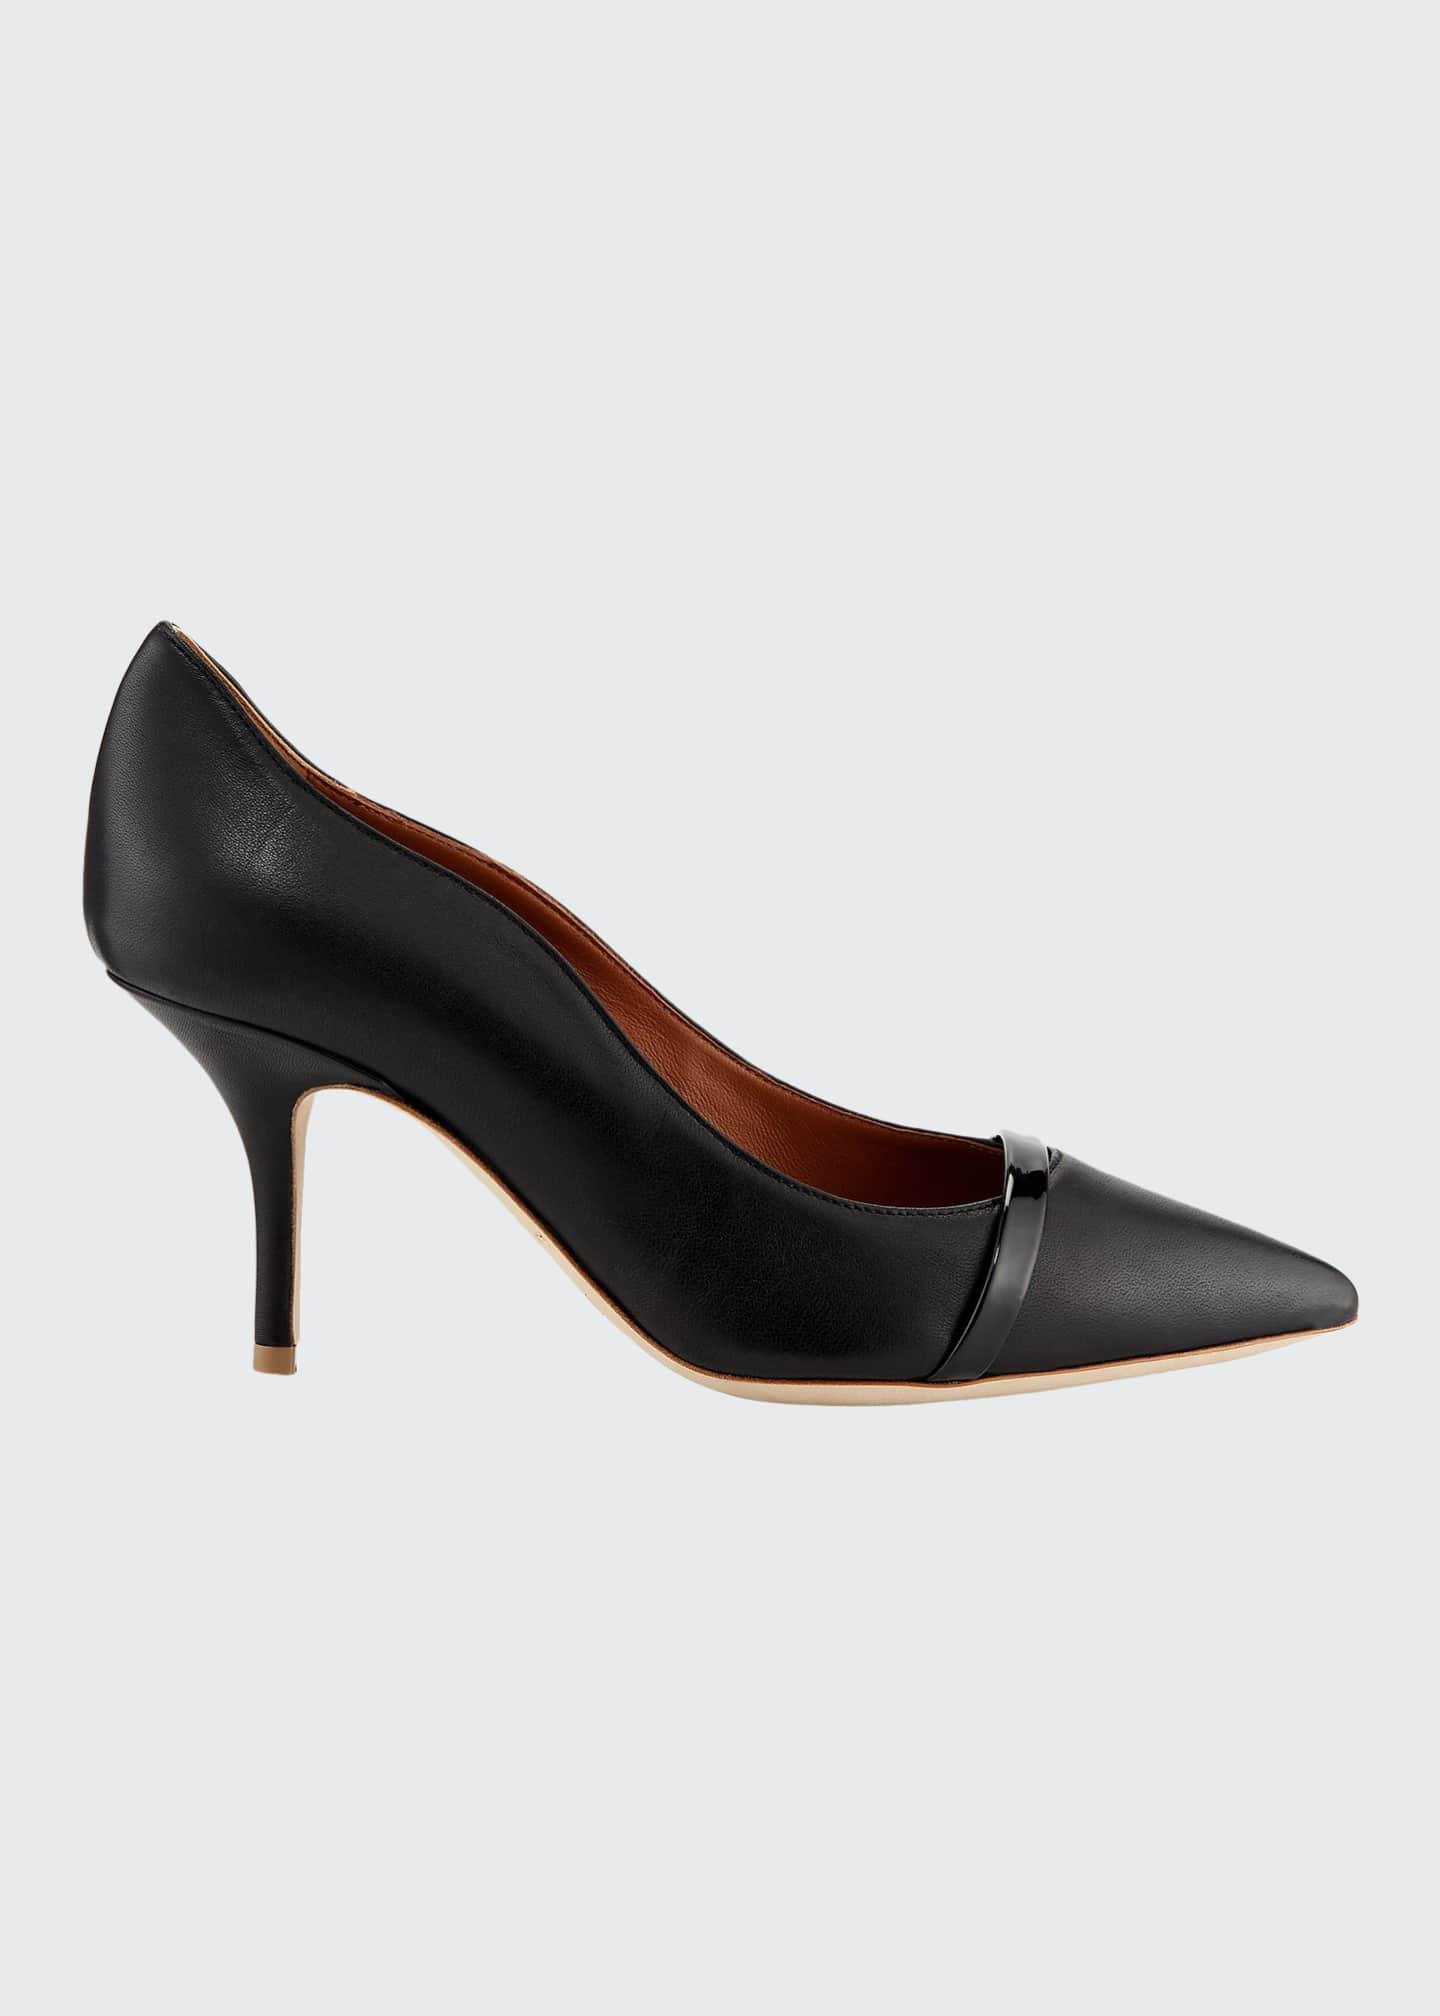 Image 1 of 4: Maybelle 70mm Scalloped Leather Pumps